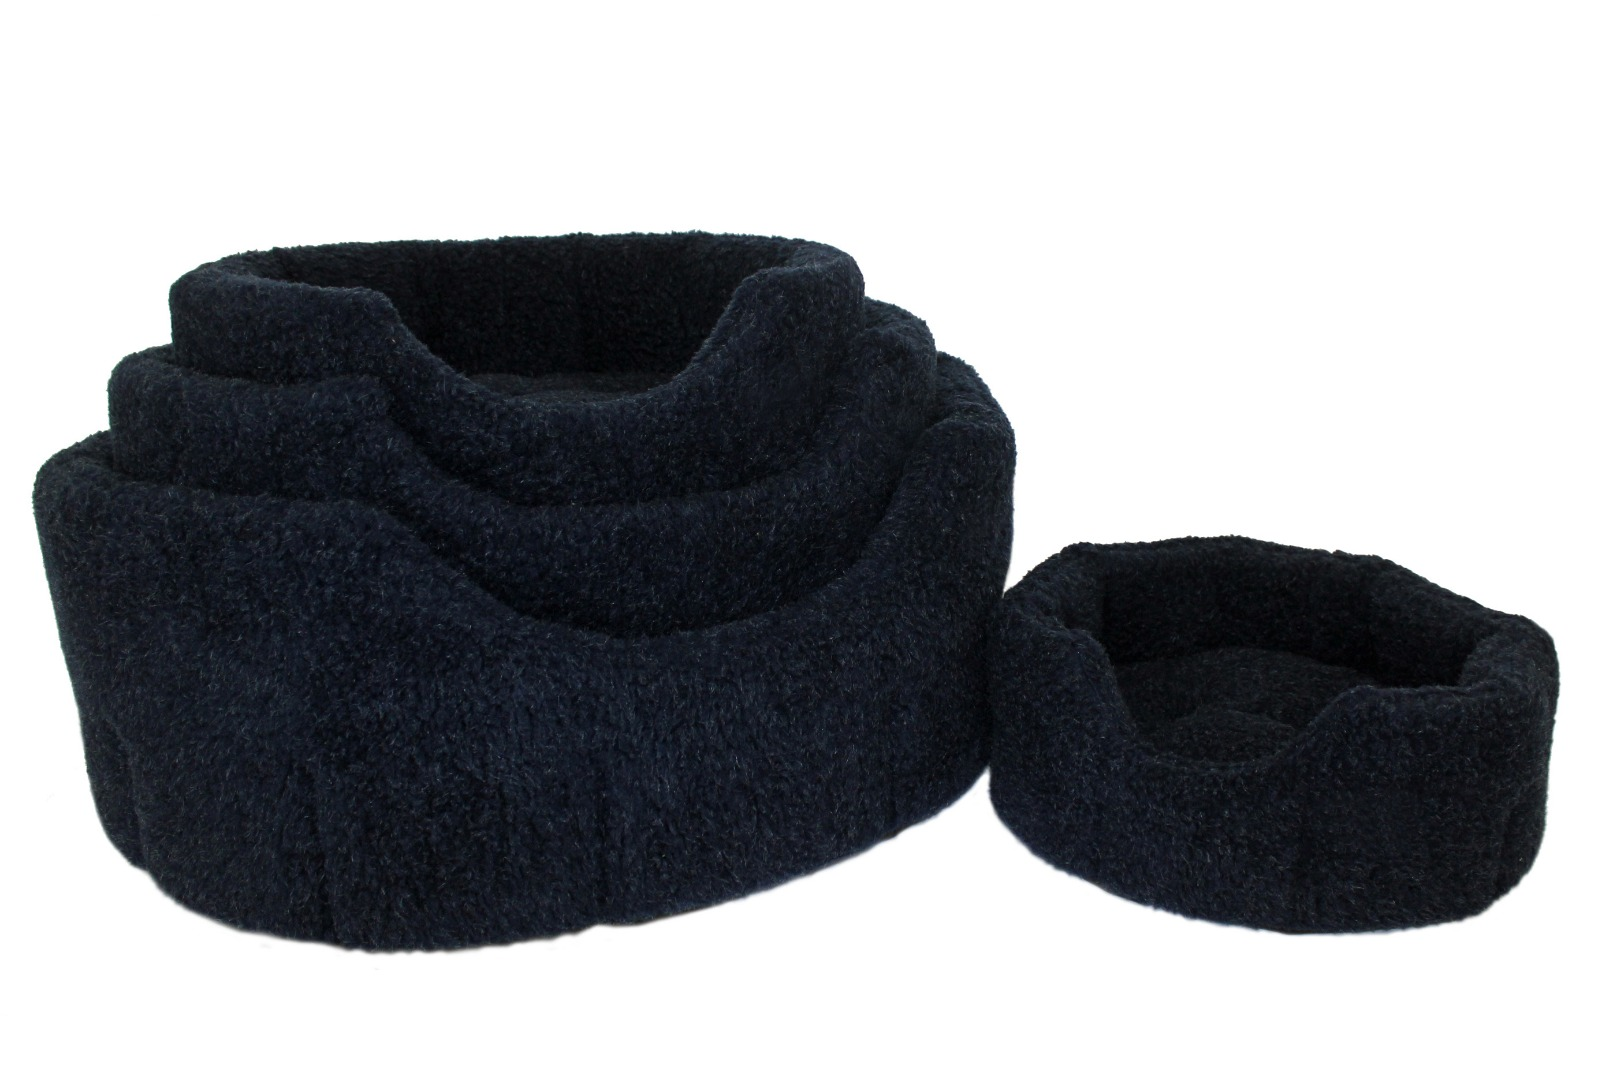 High Sided Luxury Fur Slumbernest Navy Blue Dog Bed